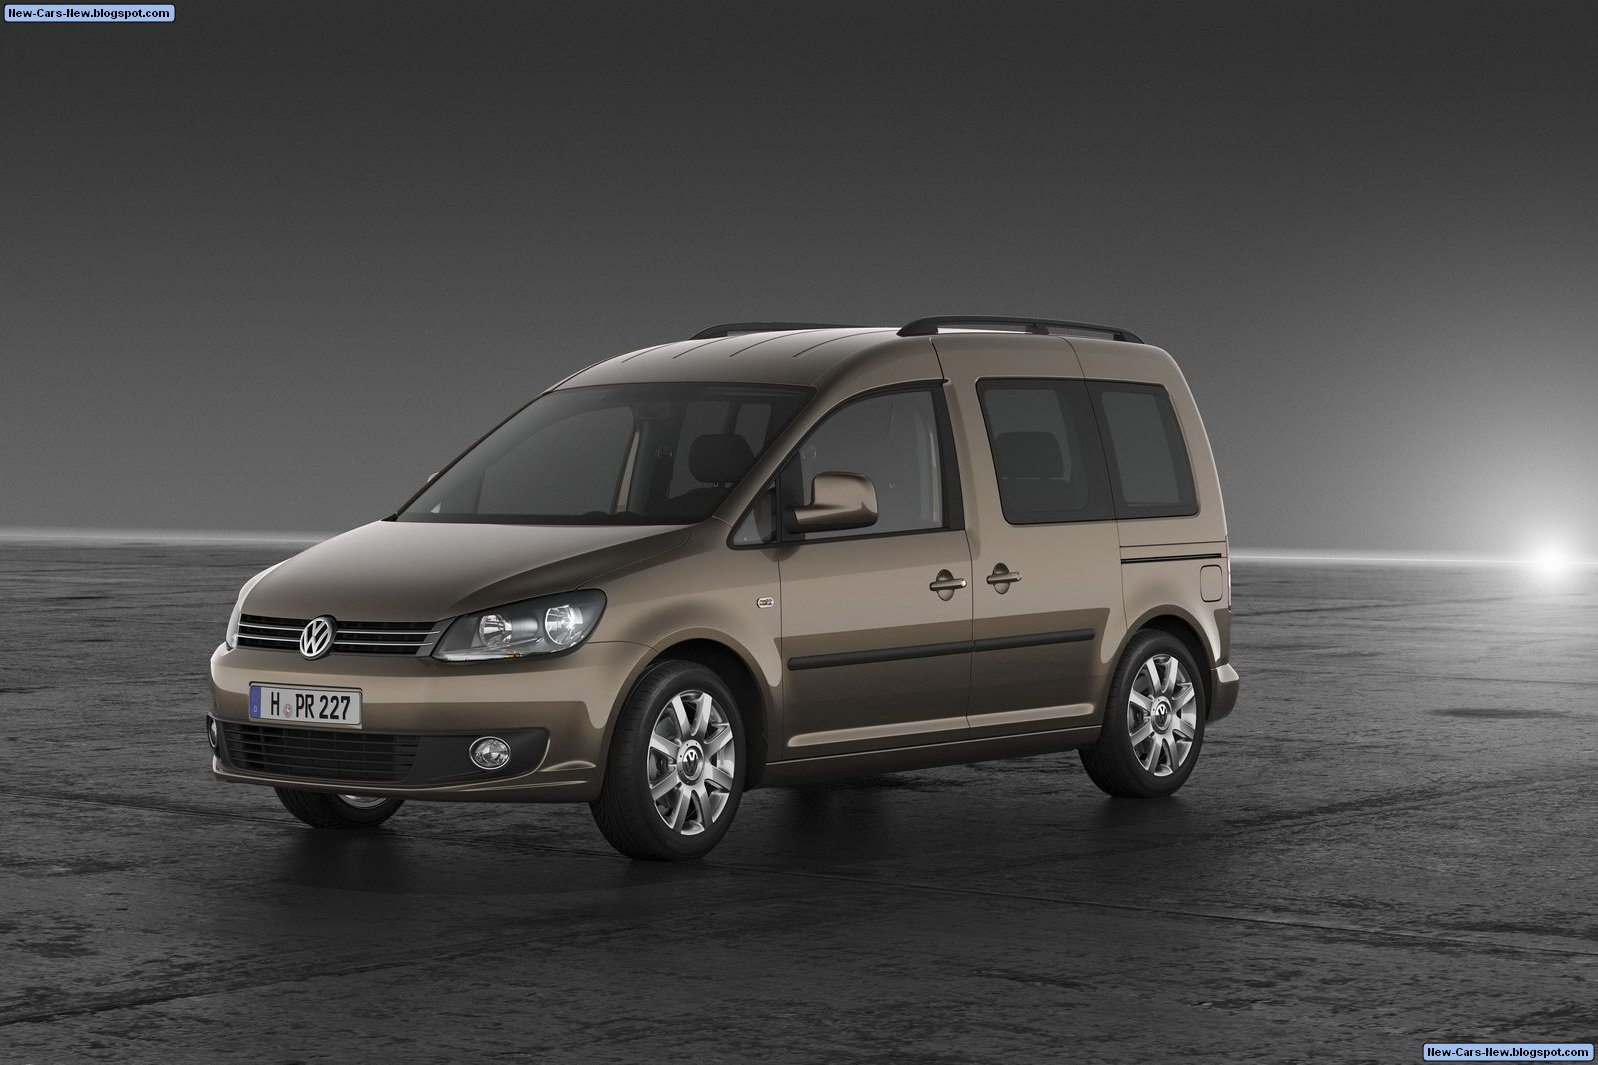 volkswagen caddy facelift 2011 best car blog. Black Bedroom Furniture Sets. Home Design Ideas